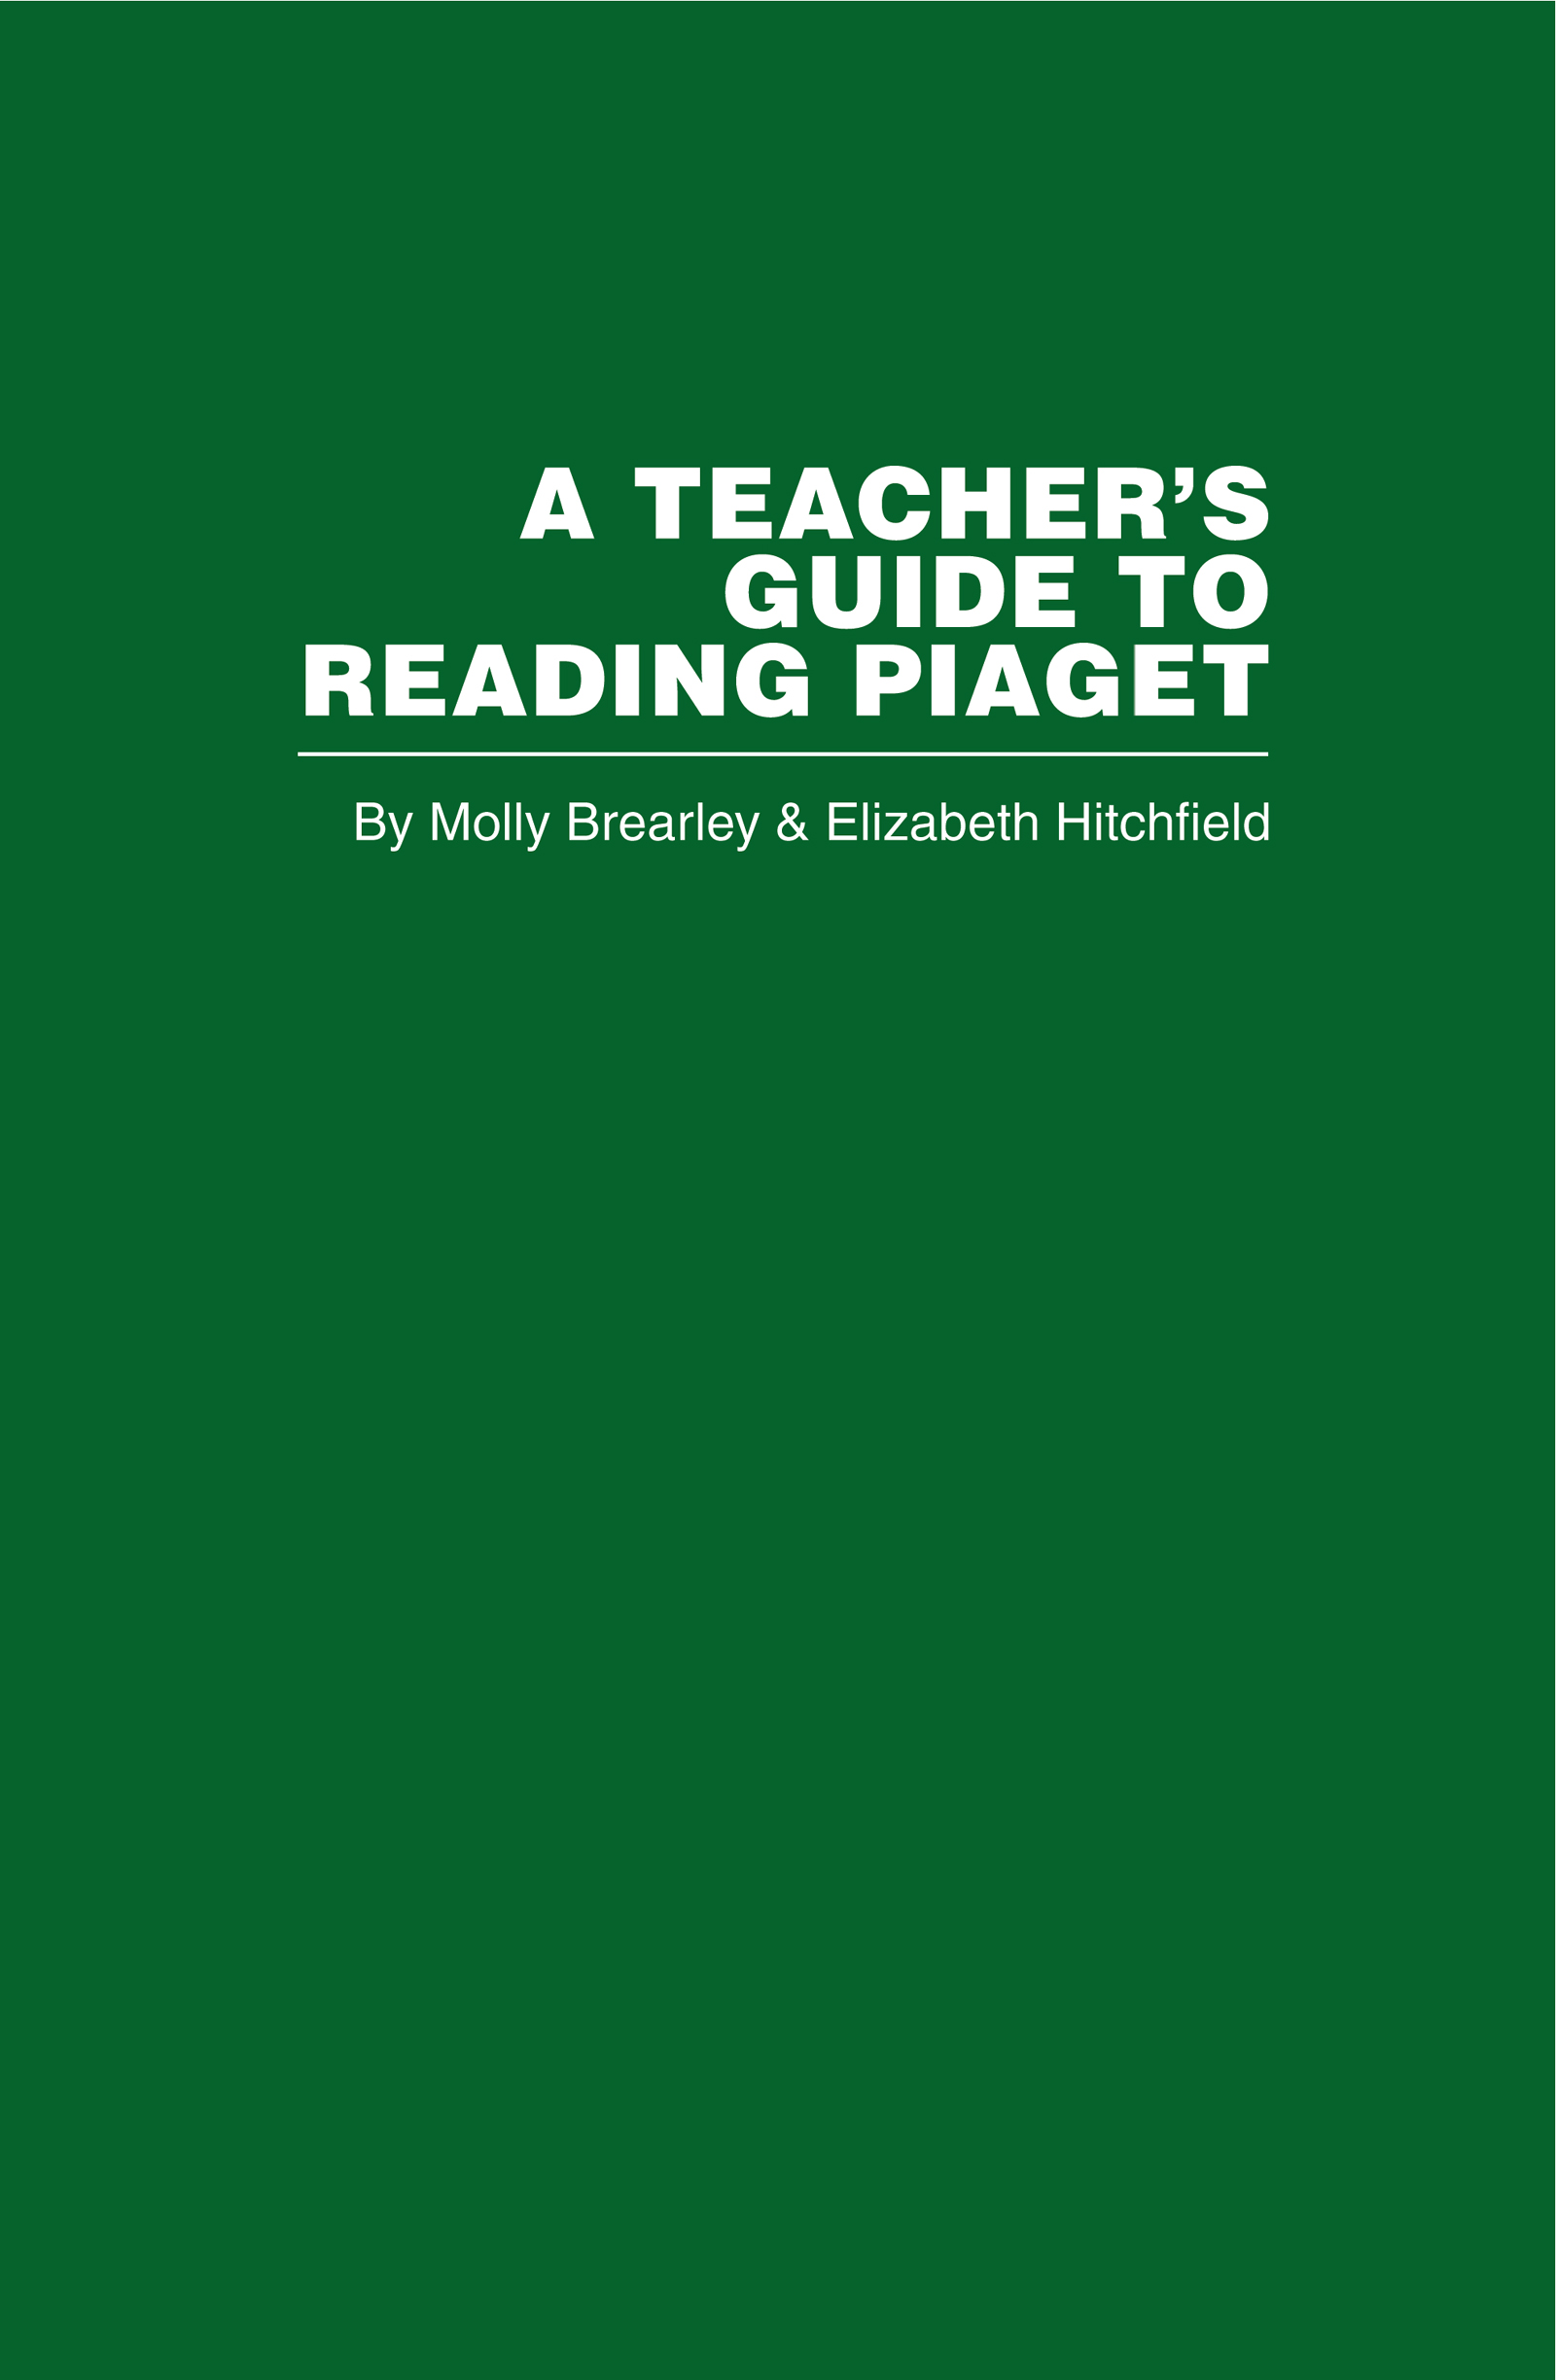 A Teacher's Guide to Reading Piaget